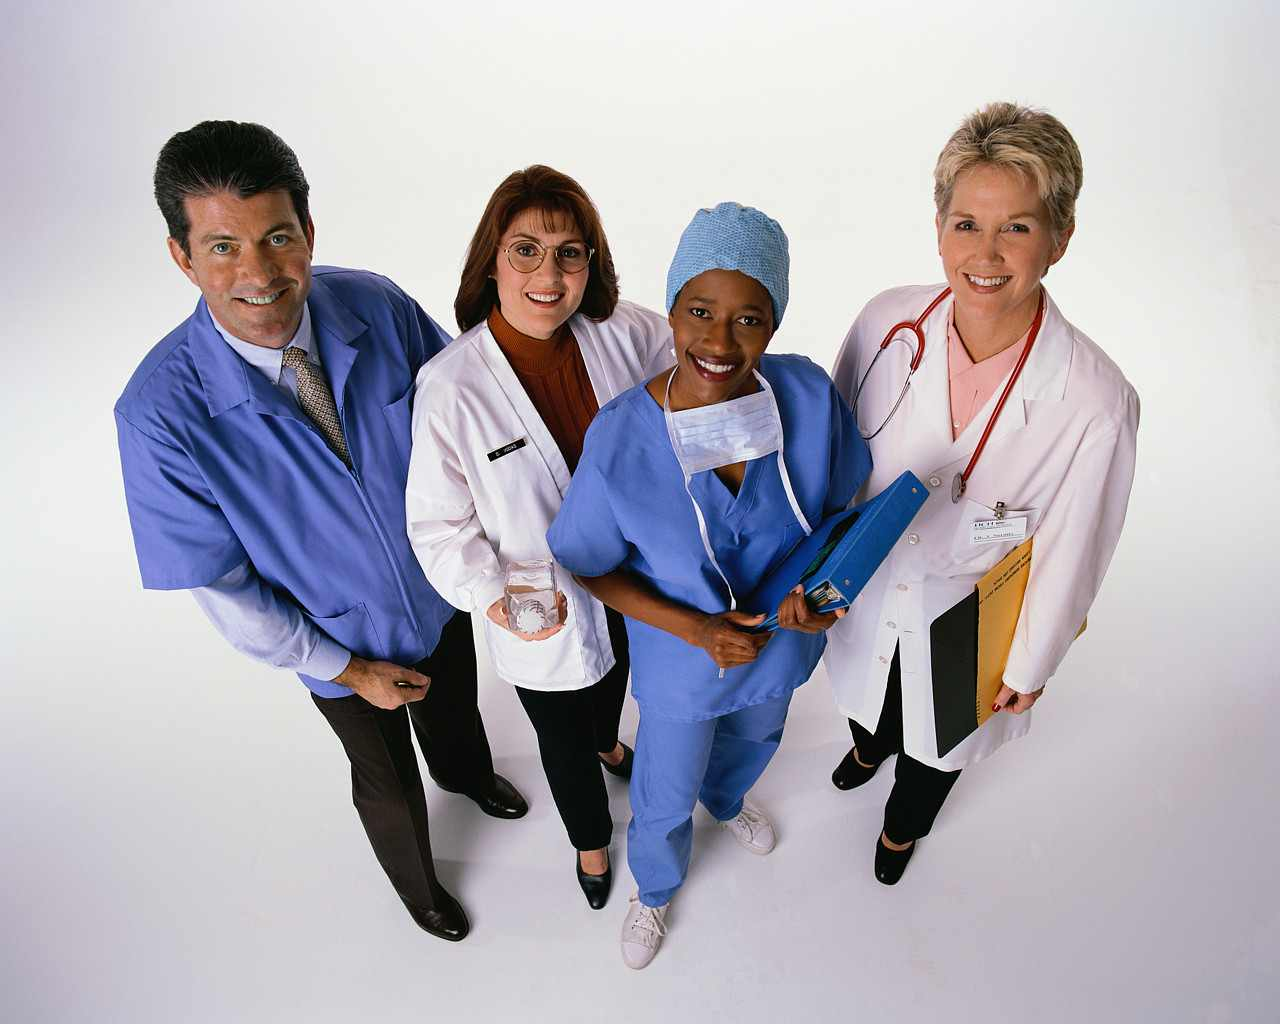 Cna Exams For Certification Cna 1 And Cna 2a Classes In Or